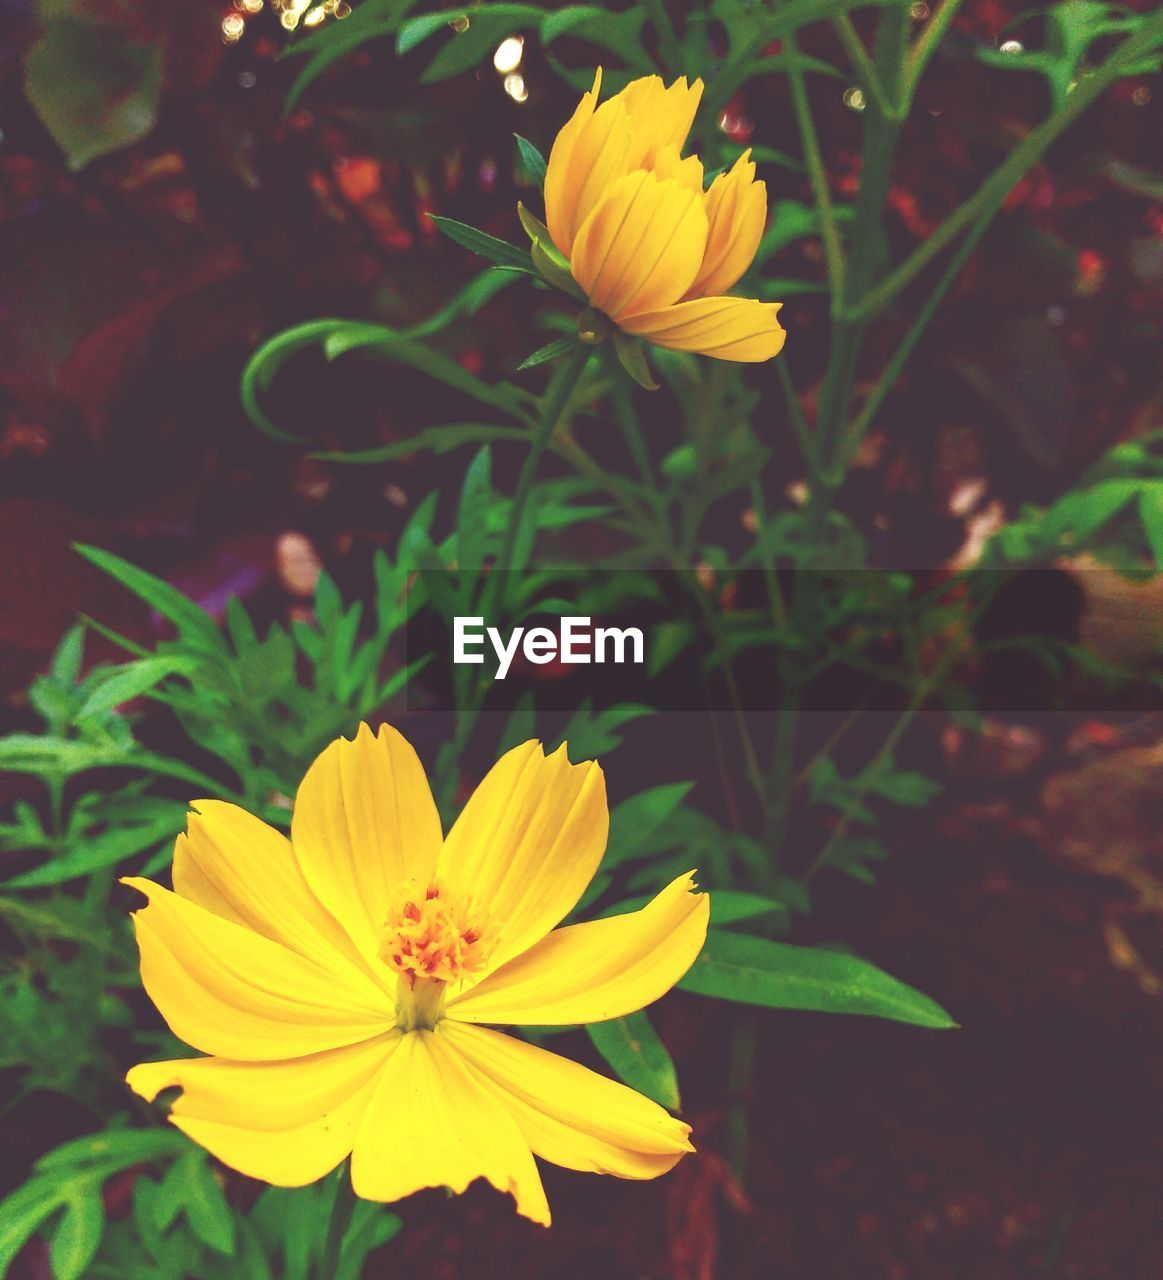 flower, petal, flower head, fragility, freshness, beauty in nature, yellow, nature, growth, plant, blooming, close-up, outdoors, no people, focus on foreground, cosmos flower, day